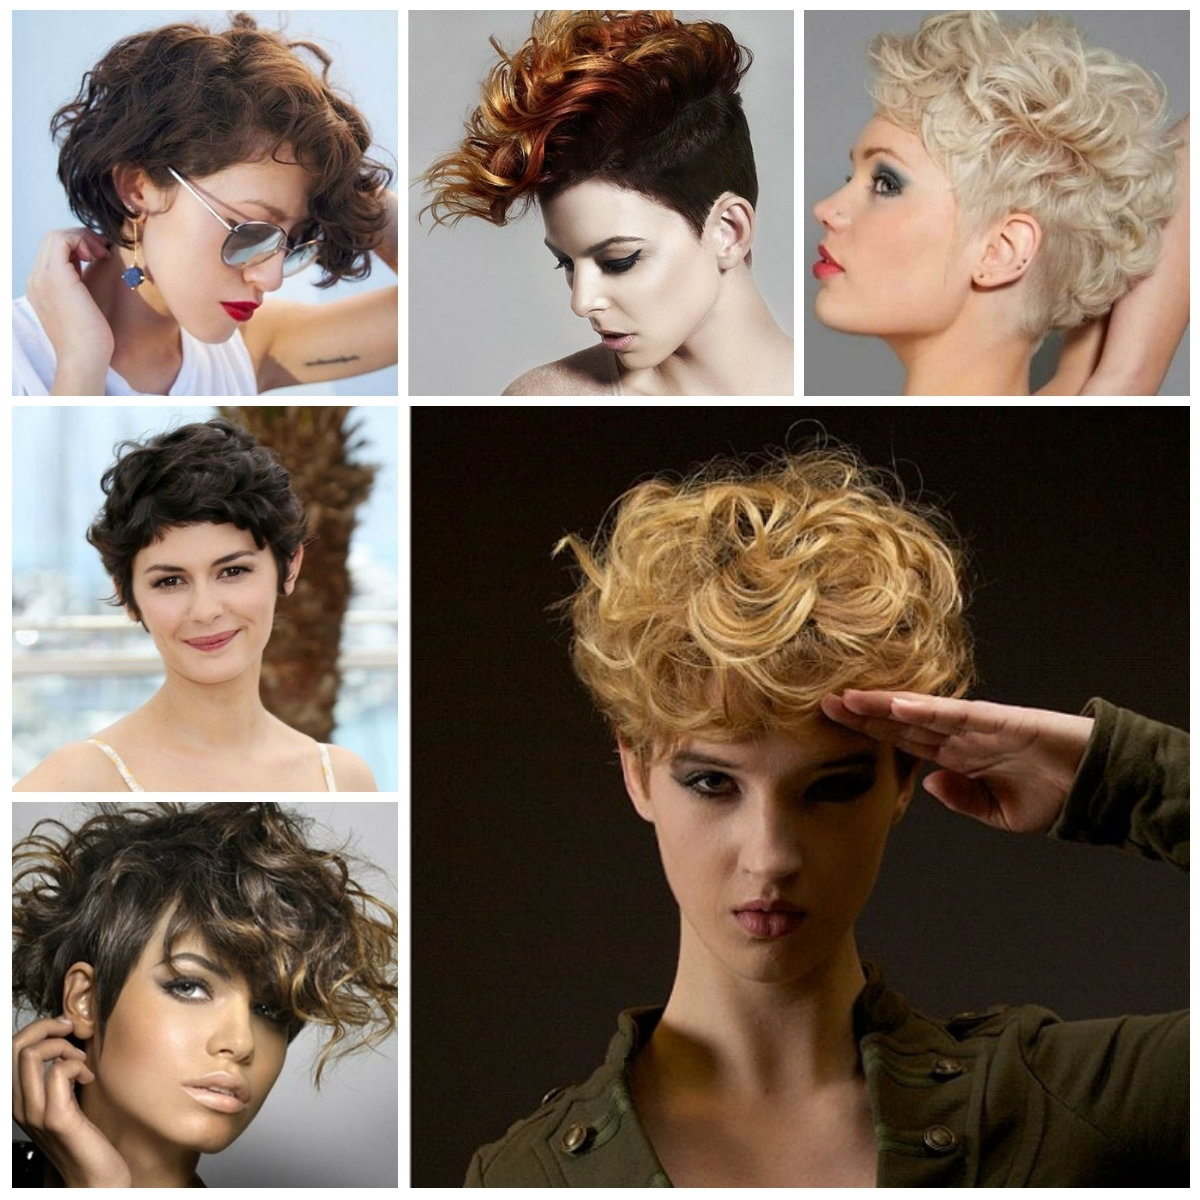 Short Pixie Haircuts For Curly Hair Best Haircuts 2018 With Rey Hair Throughout Current Long Curly Pixie Haircuts (View 2 of 15)